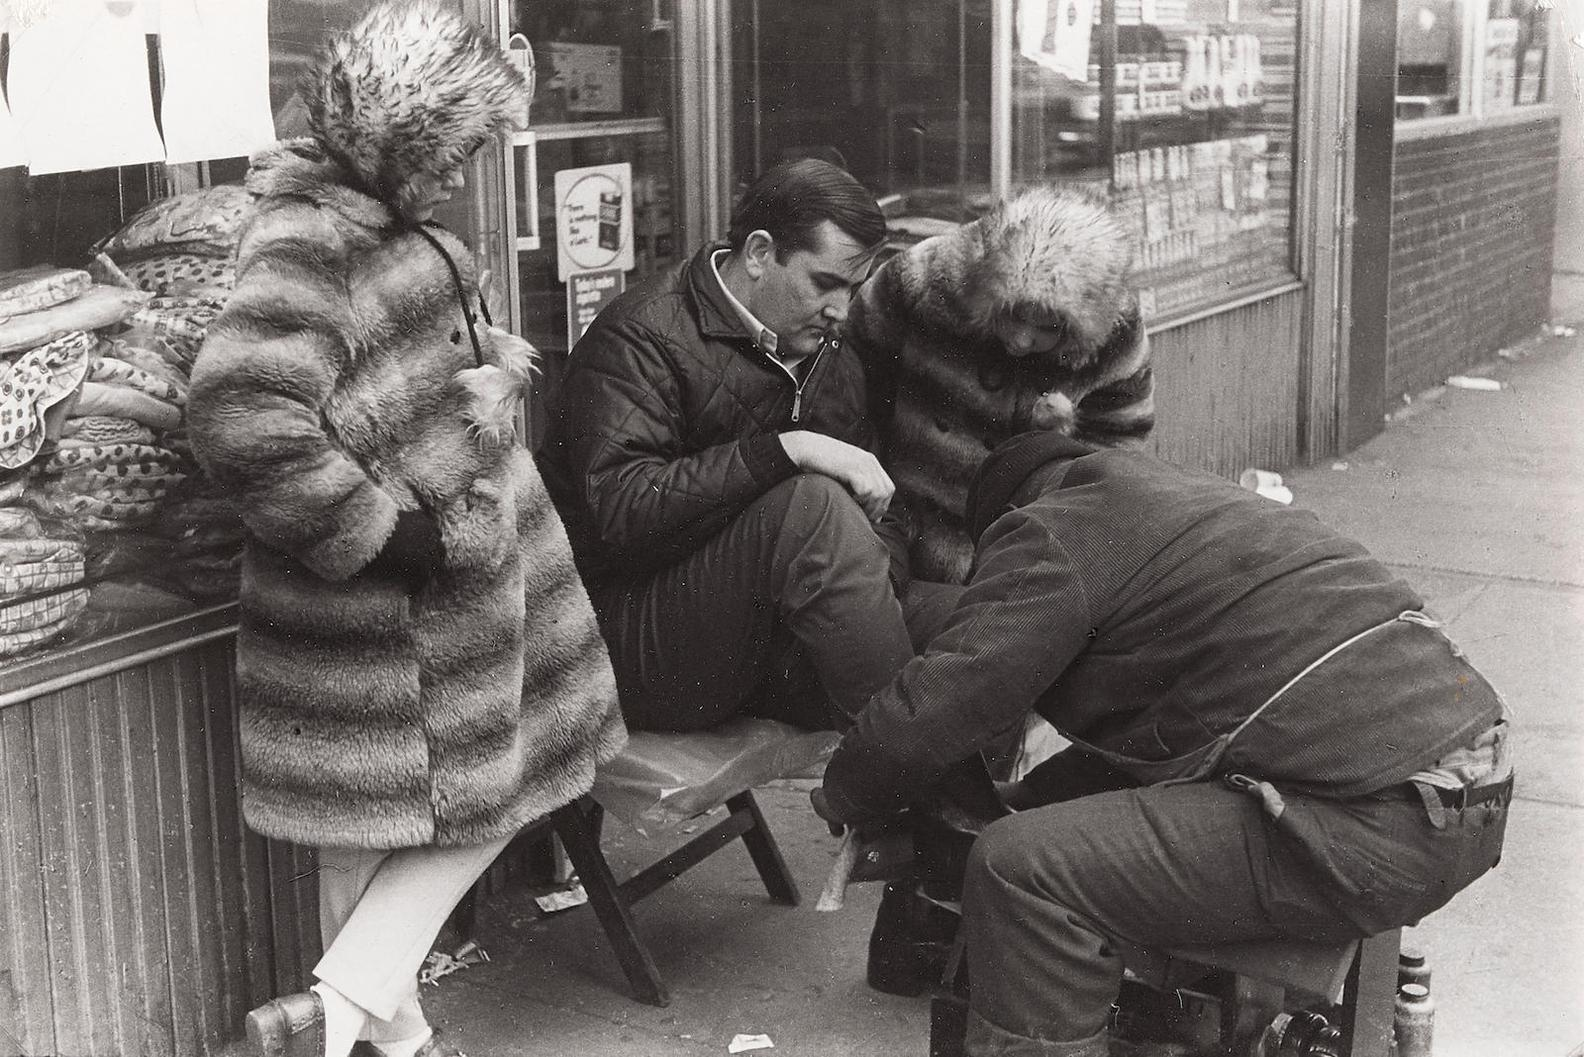 Louis Faurer-Selected Images Of Paris And New York, 1970s-